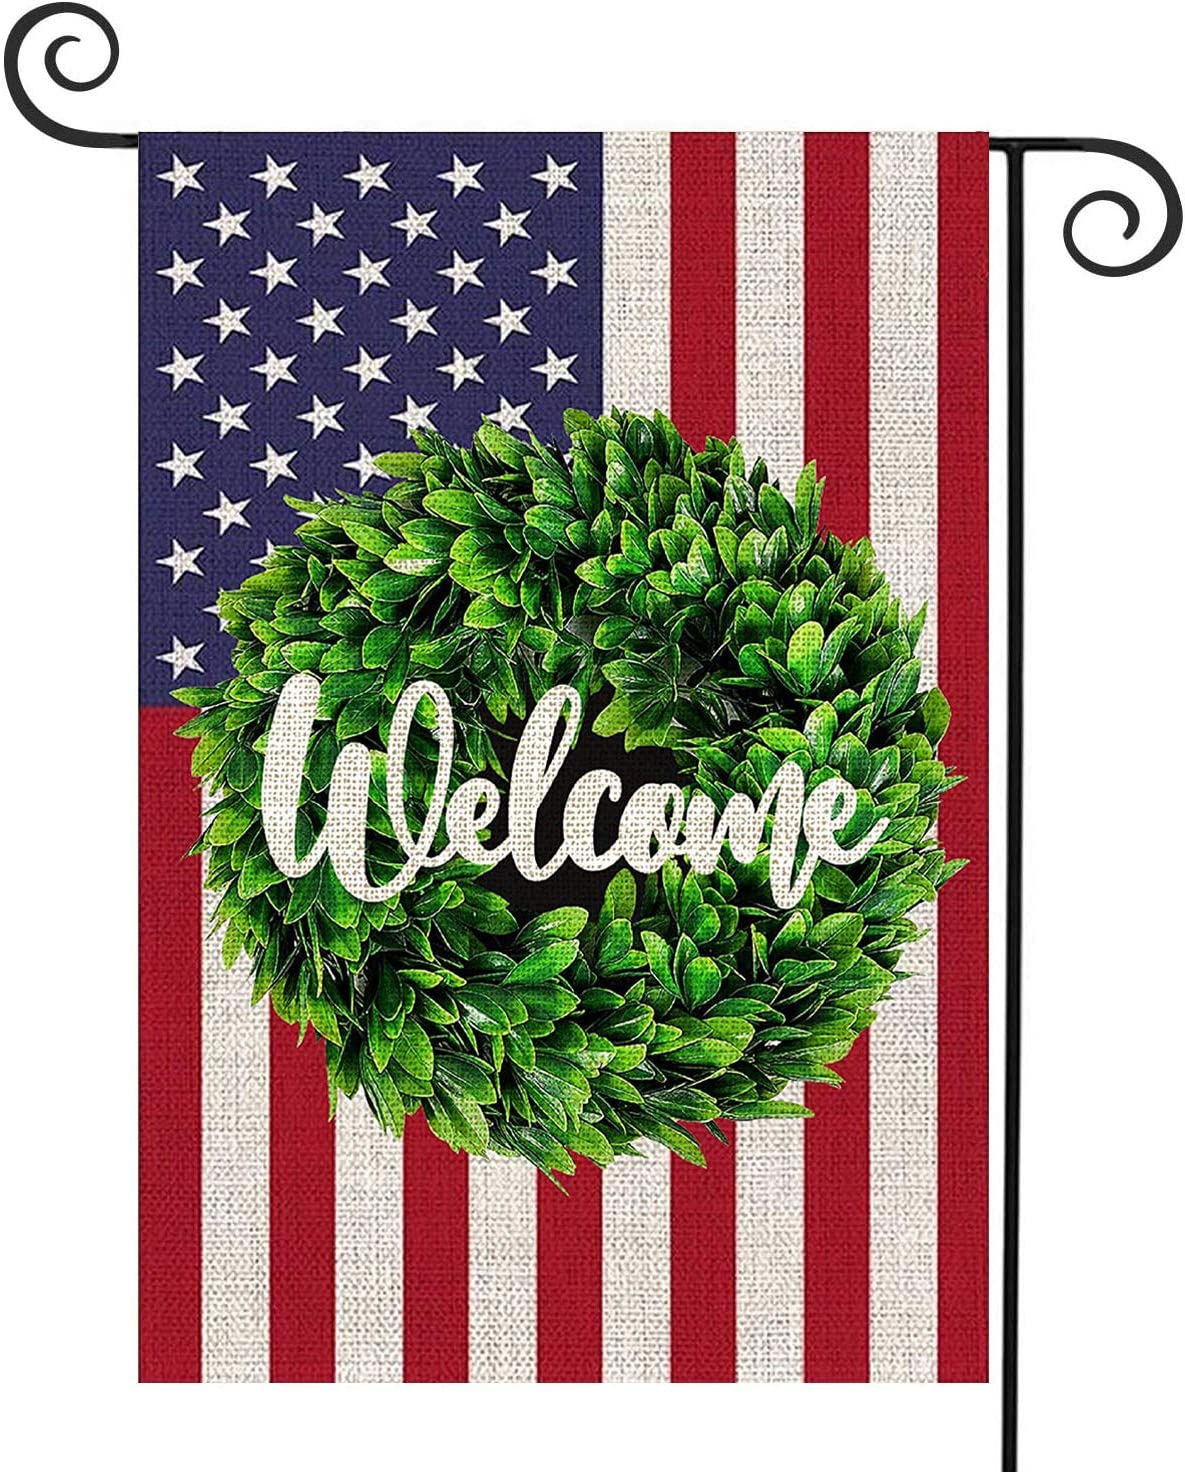 YAZEN Welcome Garden Flag Leaves Wreath Small Garden American Flag Vertical Double Sided 12.5 x 18 Inch Farmhouse Fall Burlap Yard Outdoor Décor